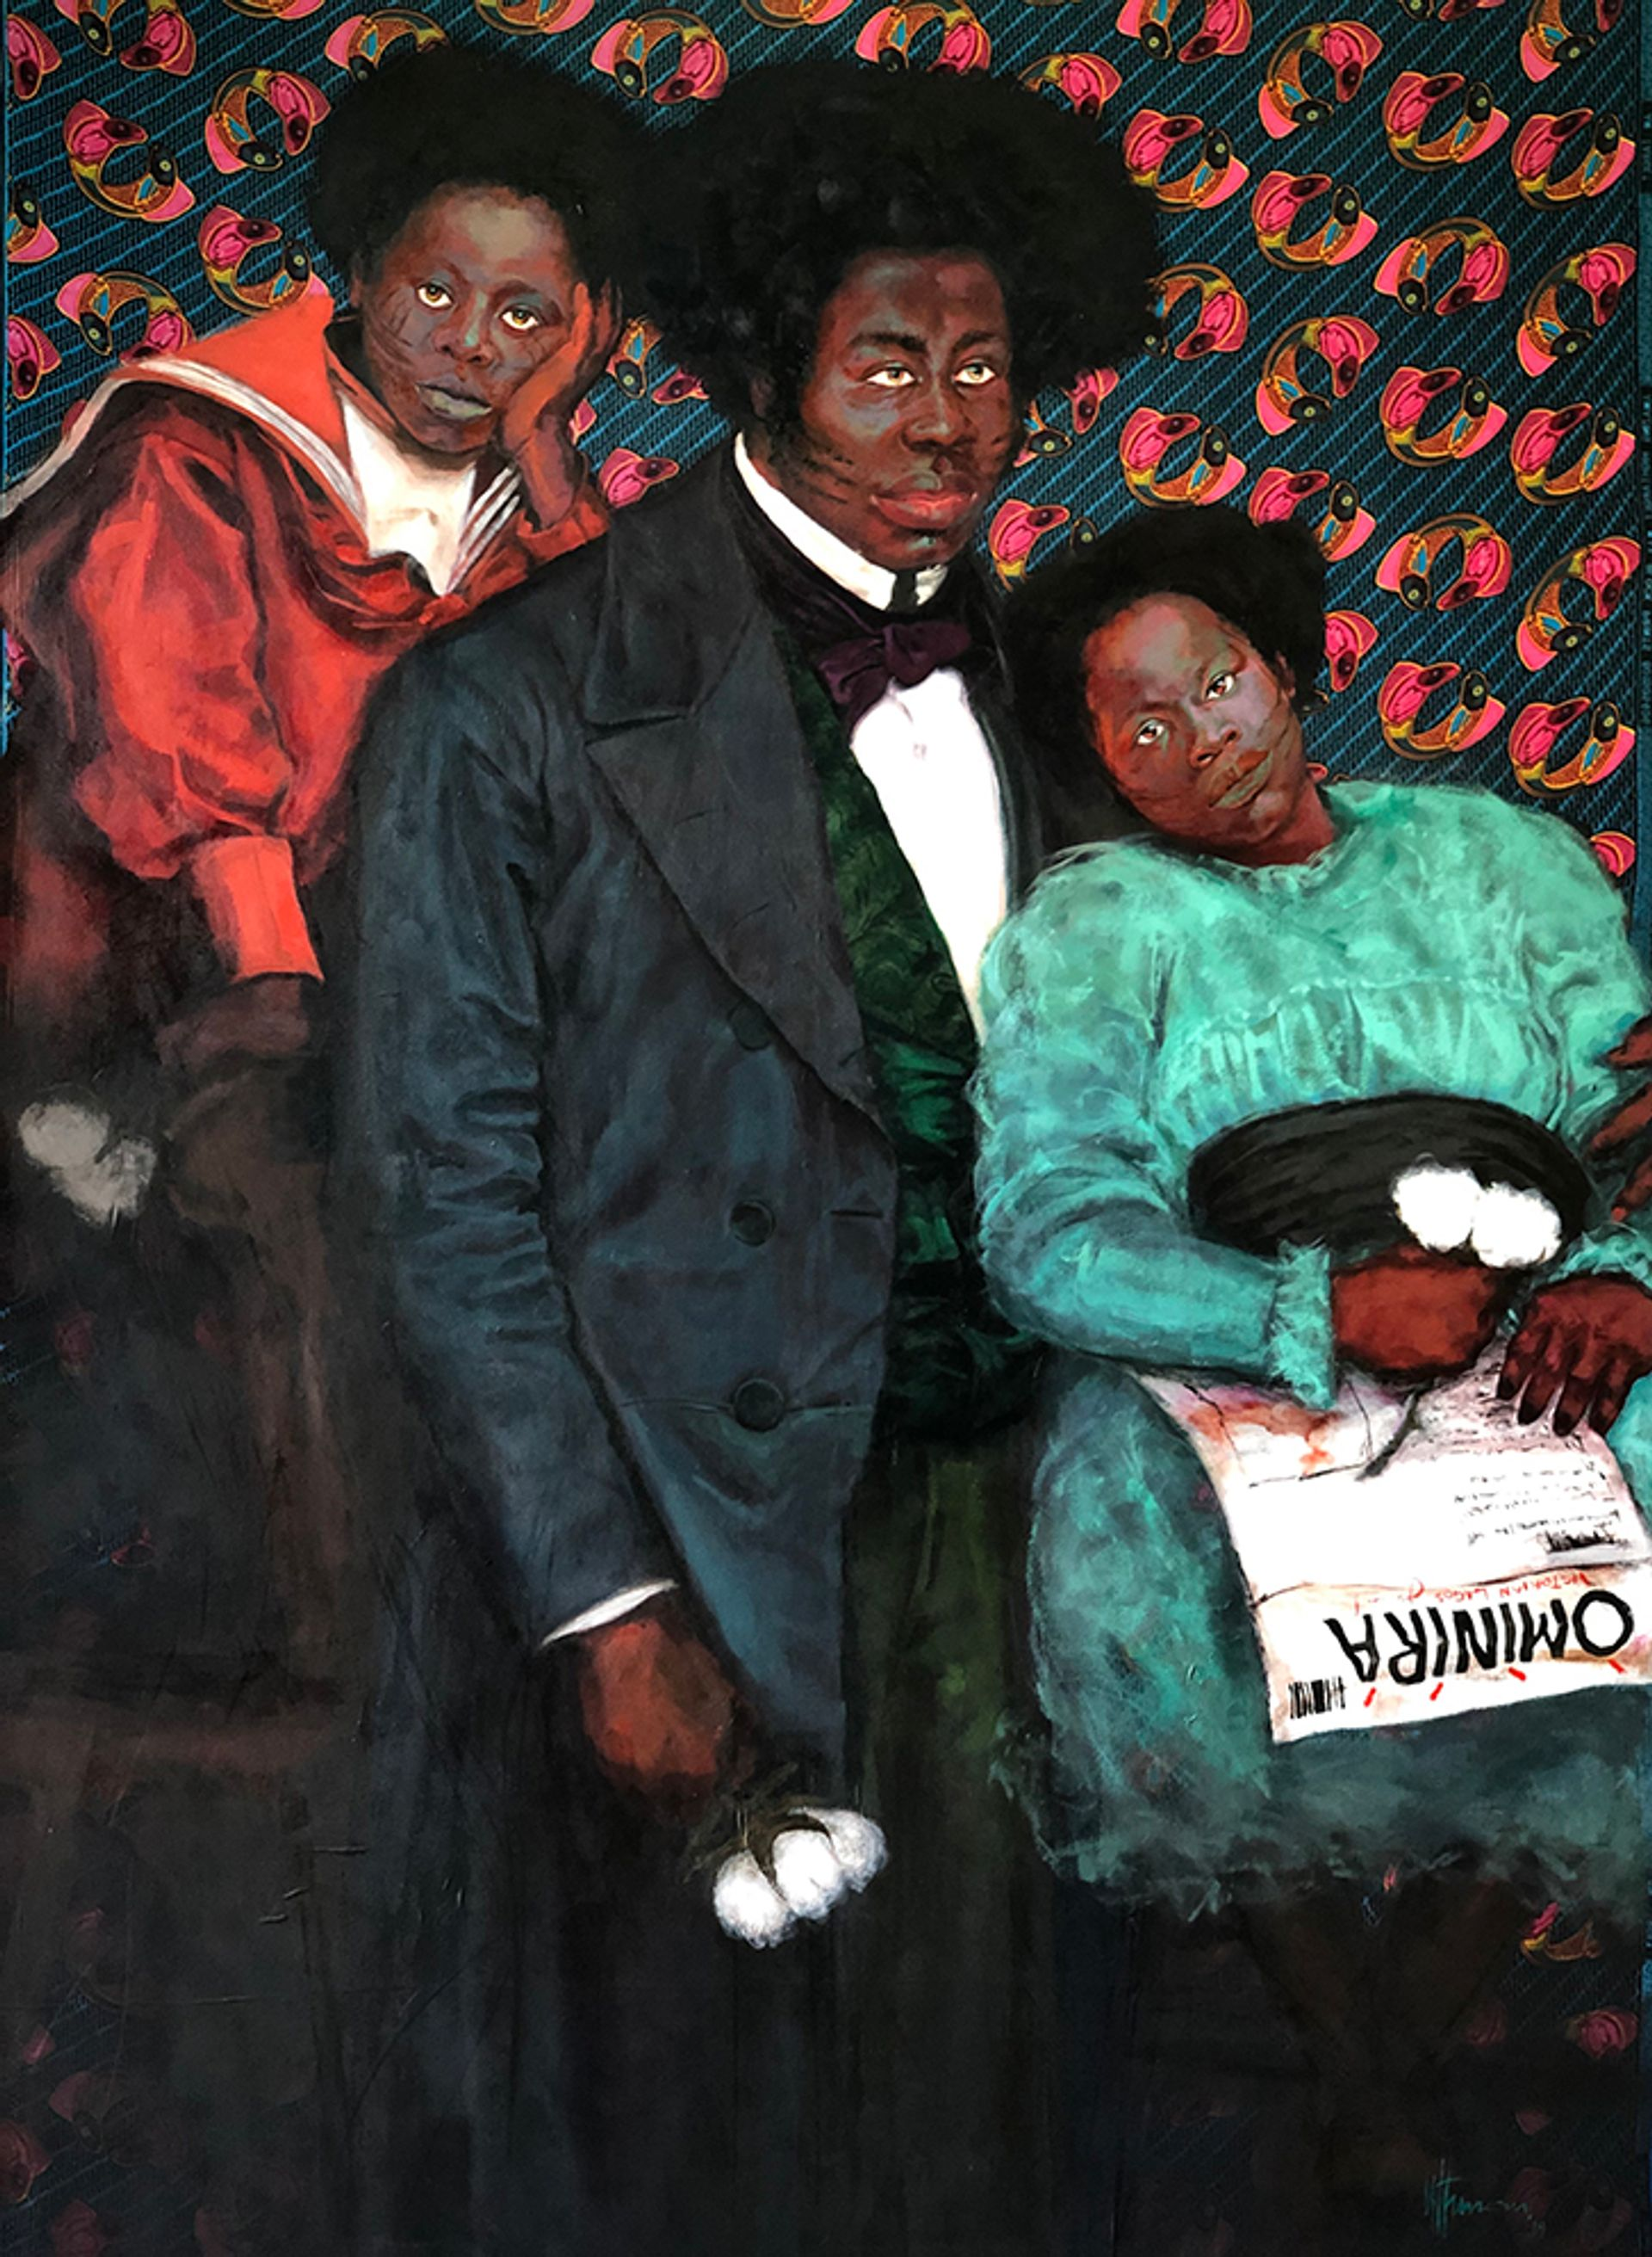 Uthman Wahaab, The Gbadébòs (2019), from his Victorian Lagos series. A similar work hangs on the writer's wall Courtesy of the artist